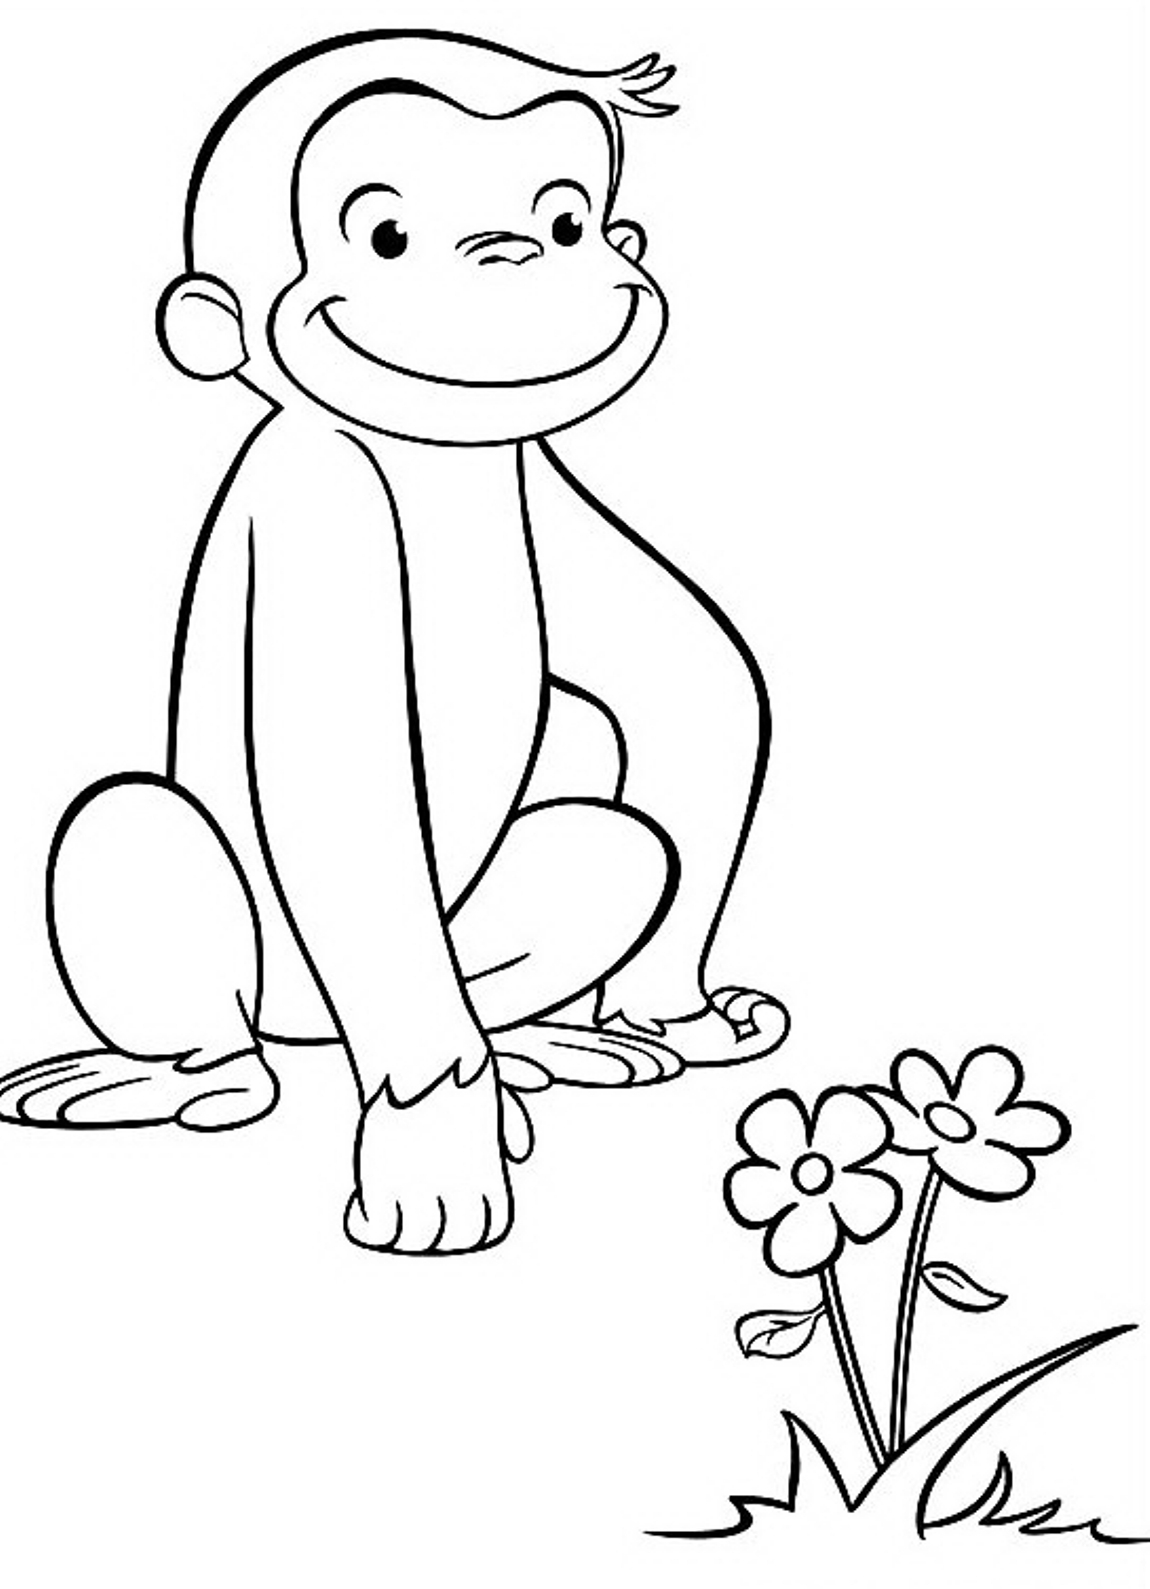 free printable curious george coloring pages 20 free printable curious george coloring pages curious coloring george pages printable free